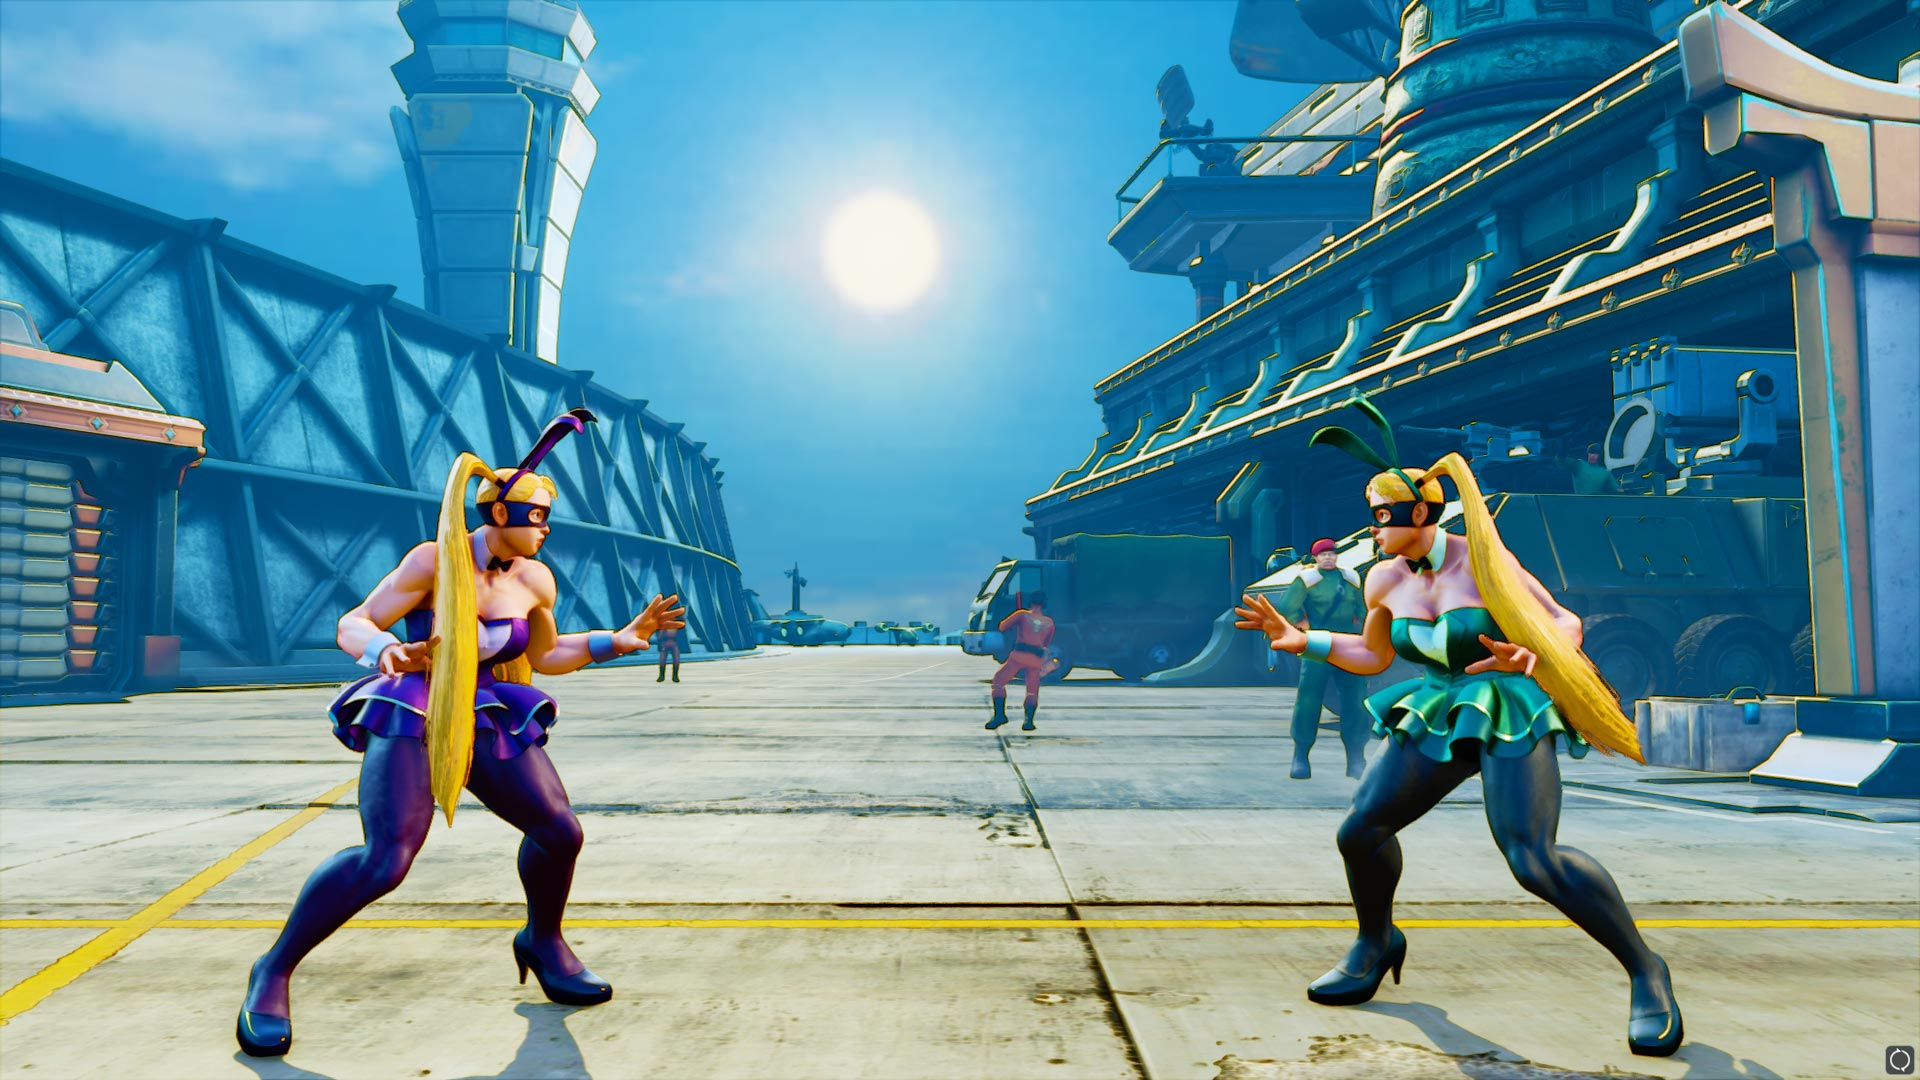 Professional costume colors for Street Fighter 5 18 out of 21 image gallery